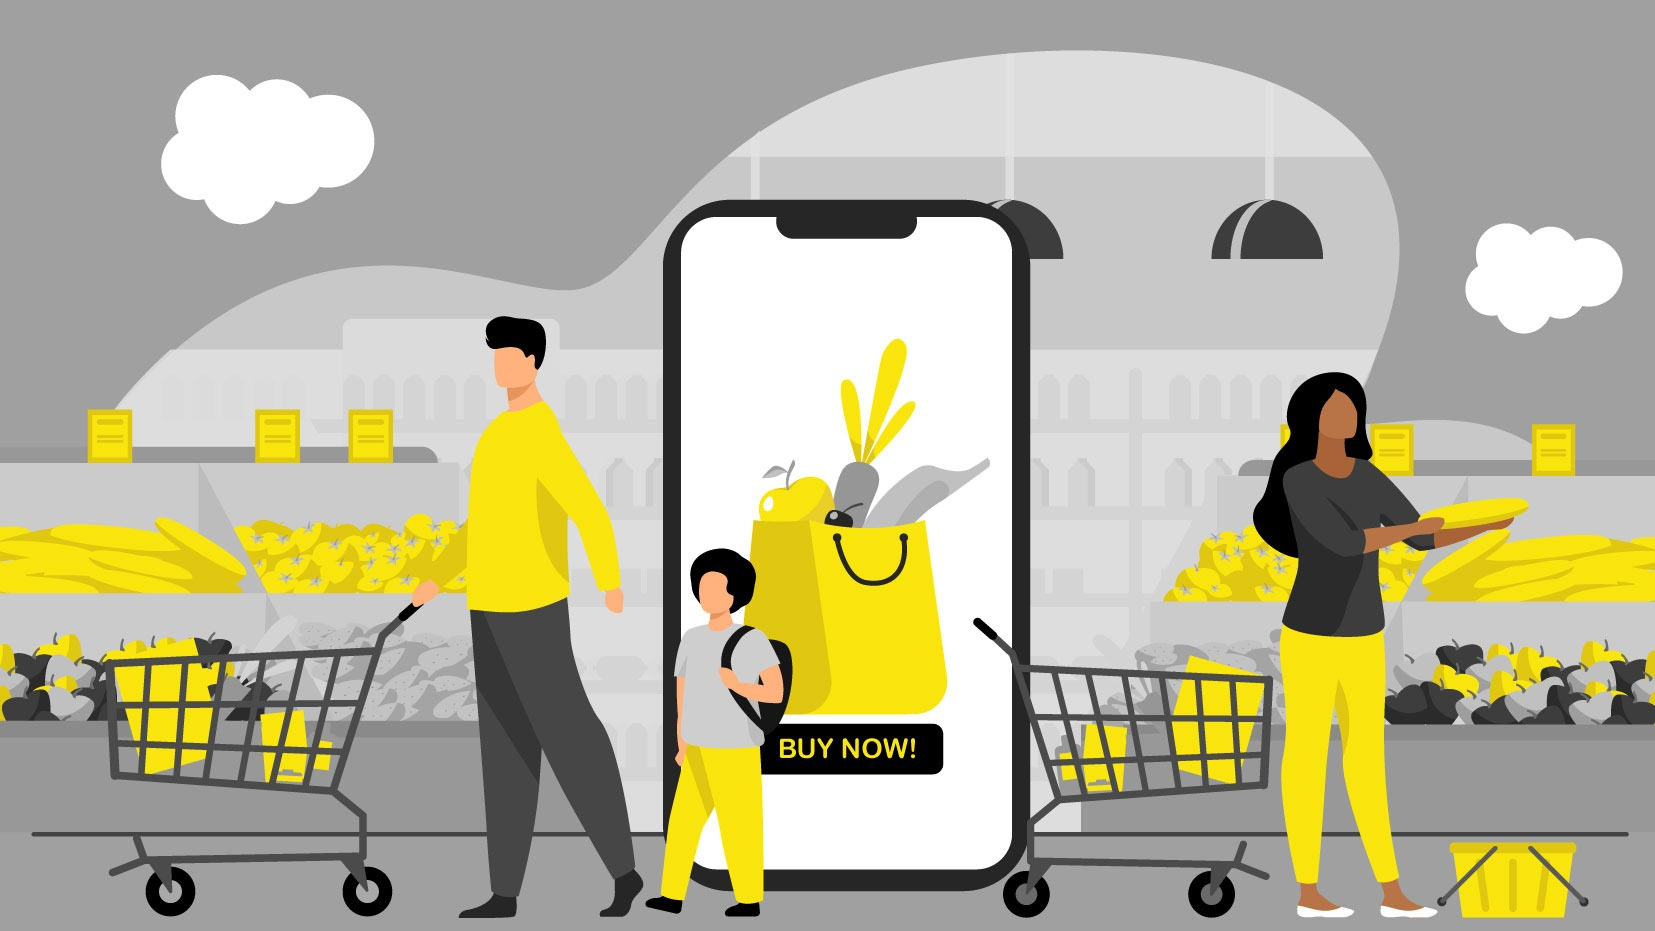 The Grocery eStore of Tomorrow